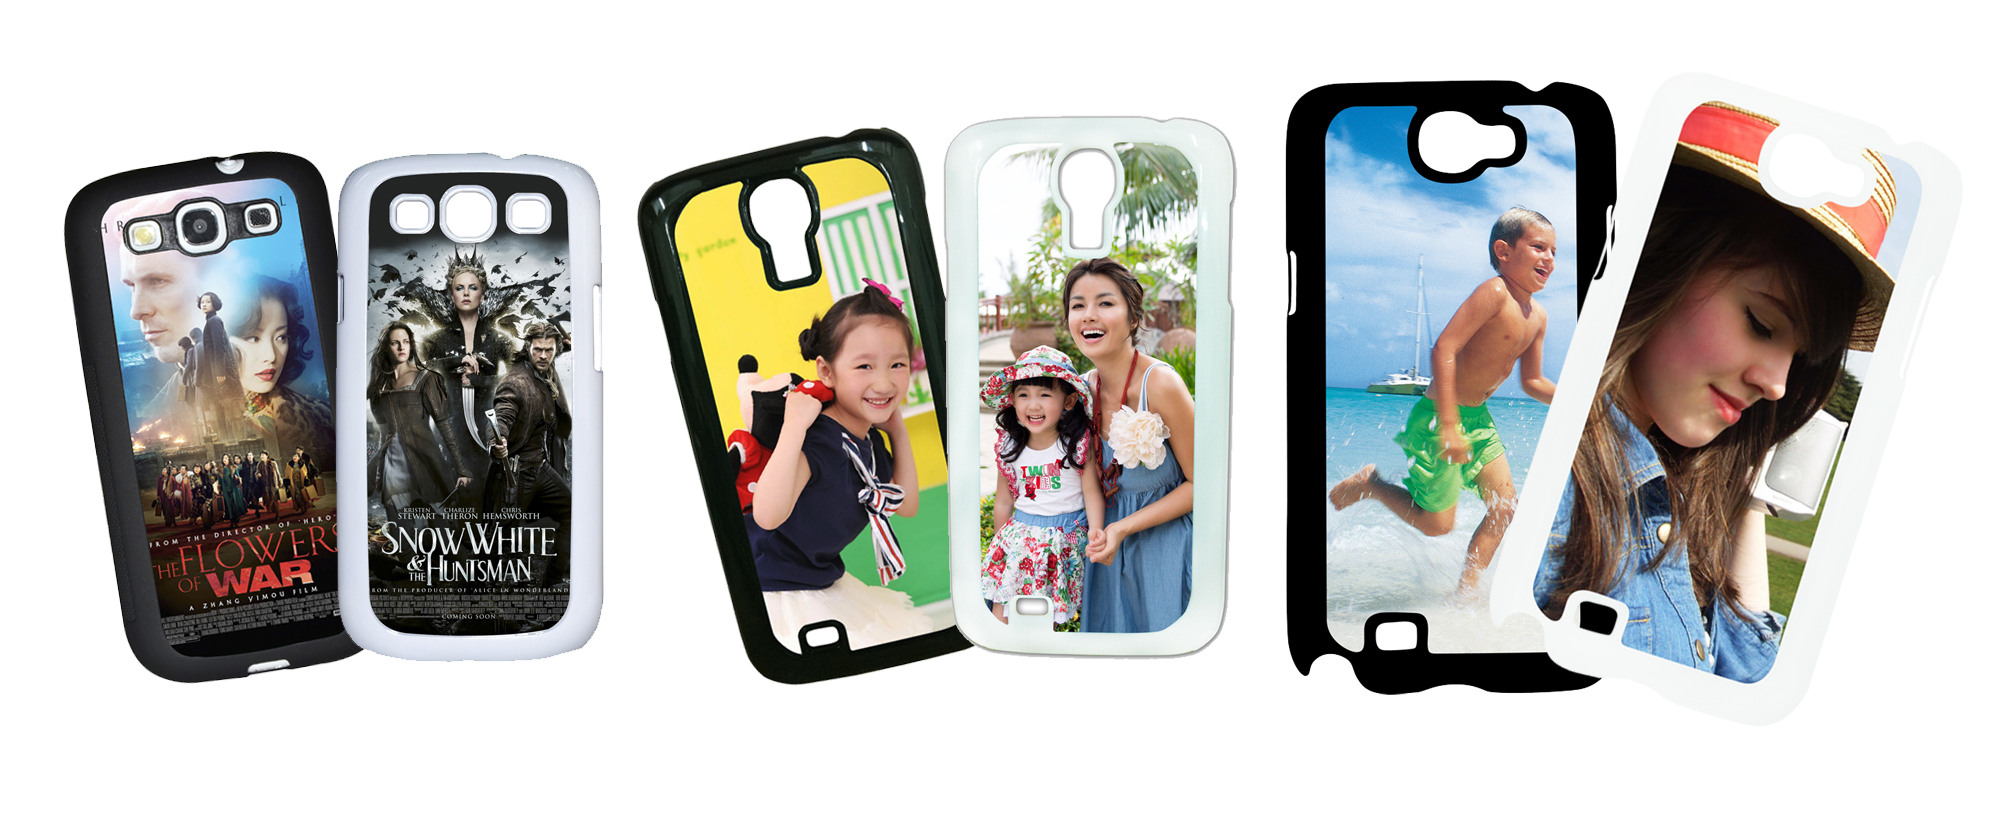 iphone photo printer case customised iphone casing phone printing malaysia 15358